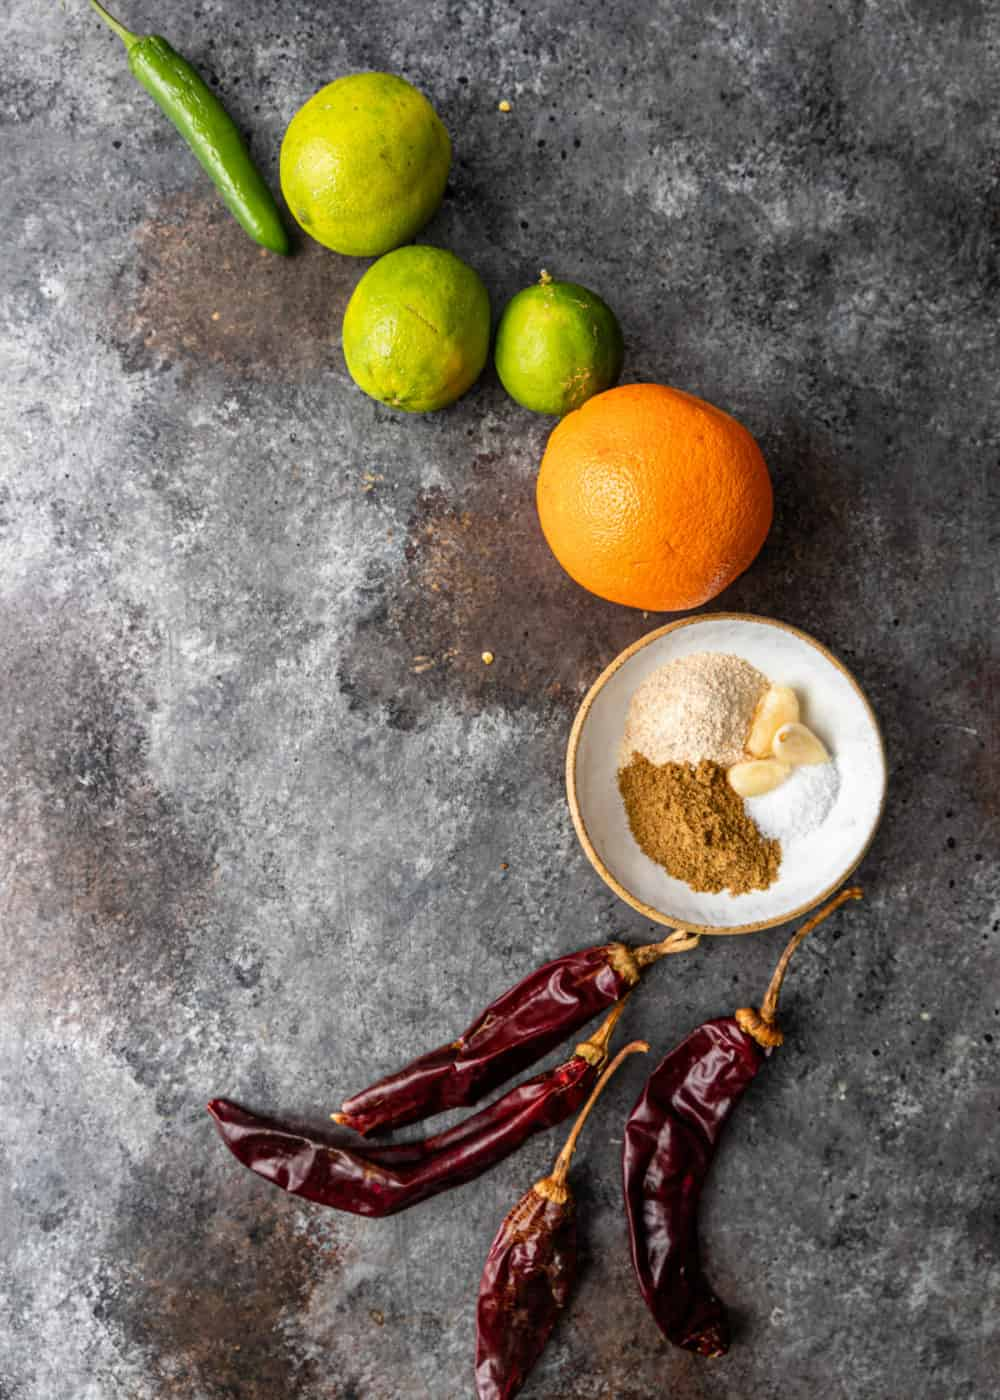 overhead: oranges, limes, chiles and spices for making carne asada marinade